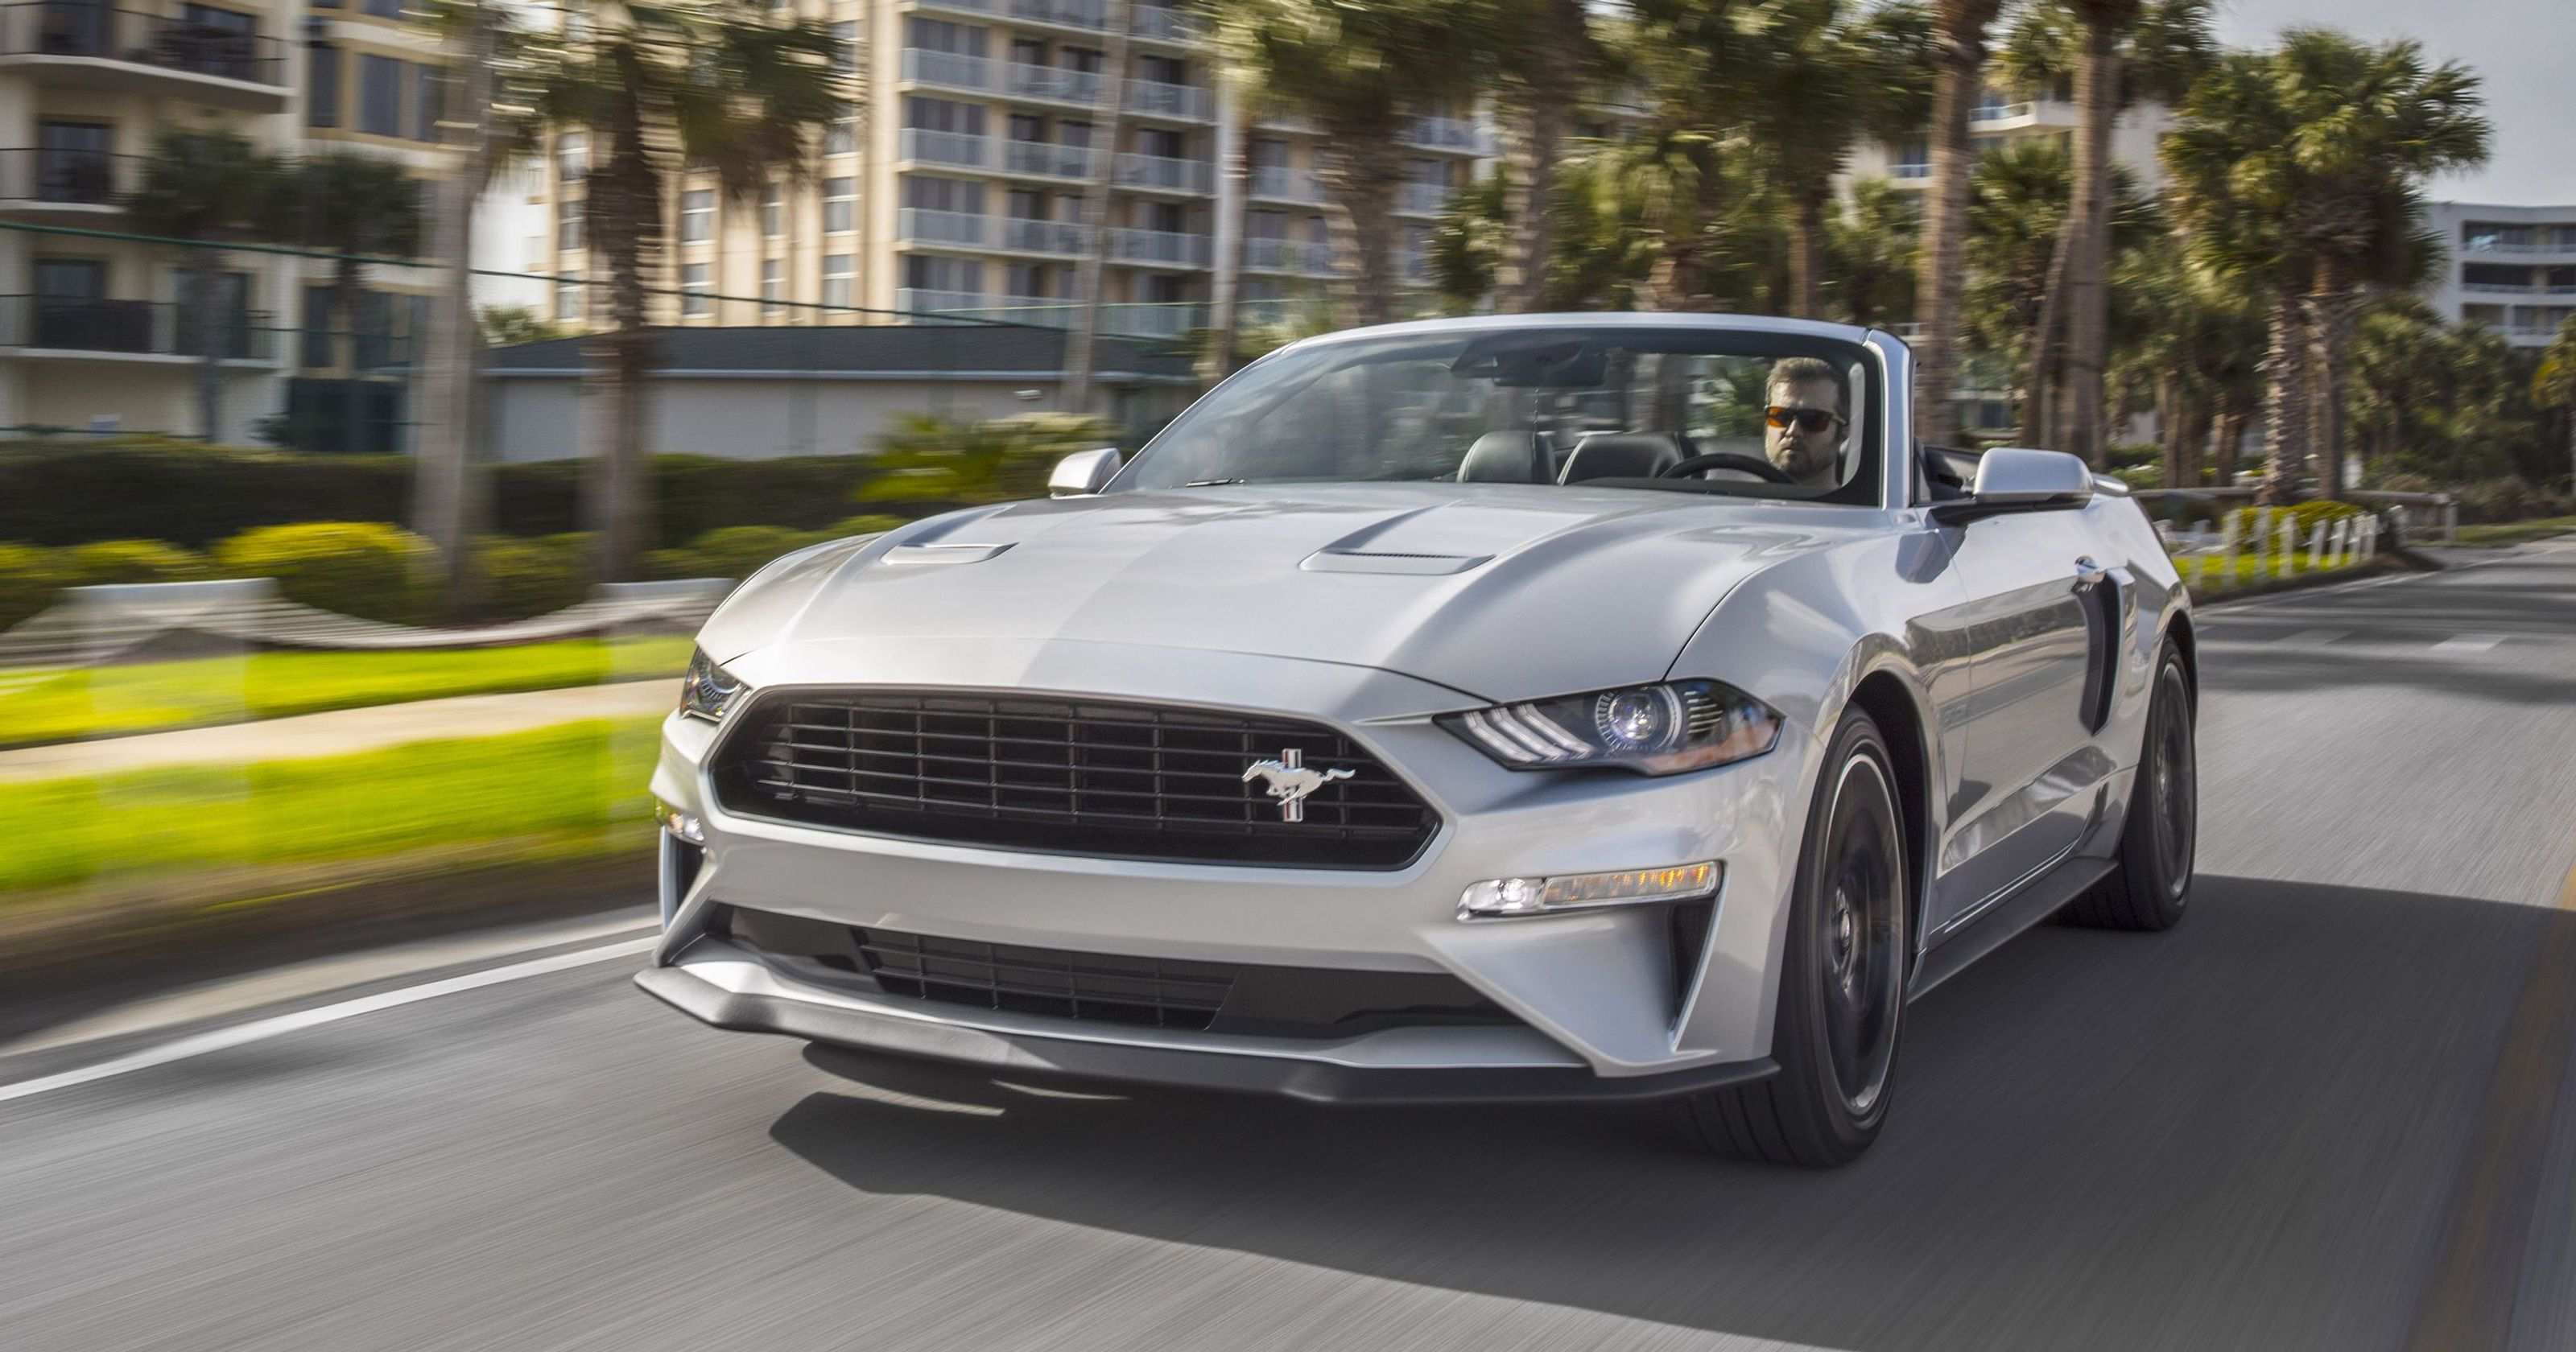 52 The Best 2019 Mustang Mach Images